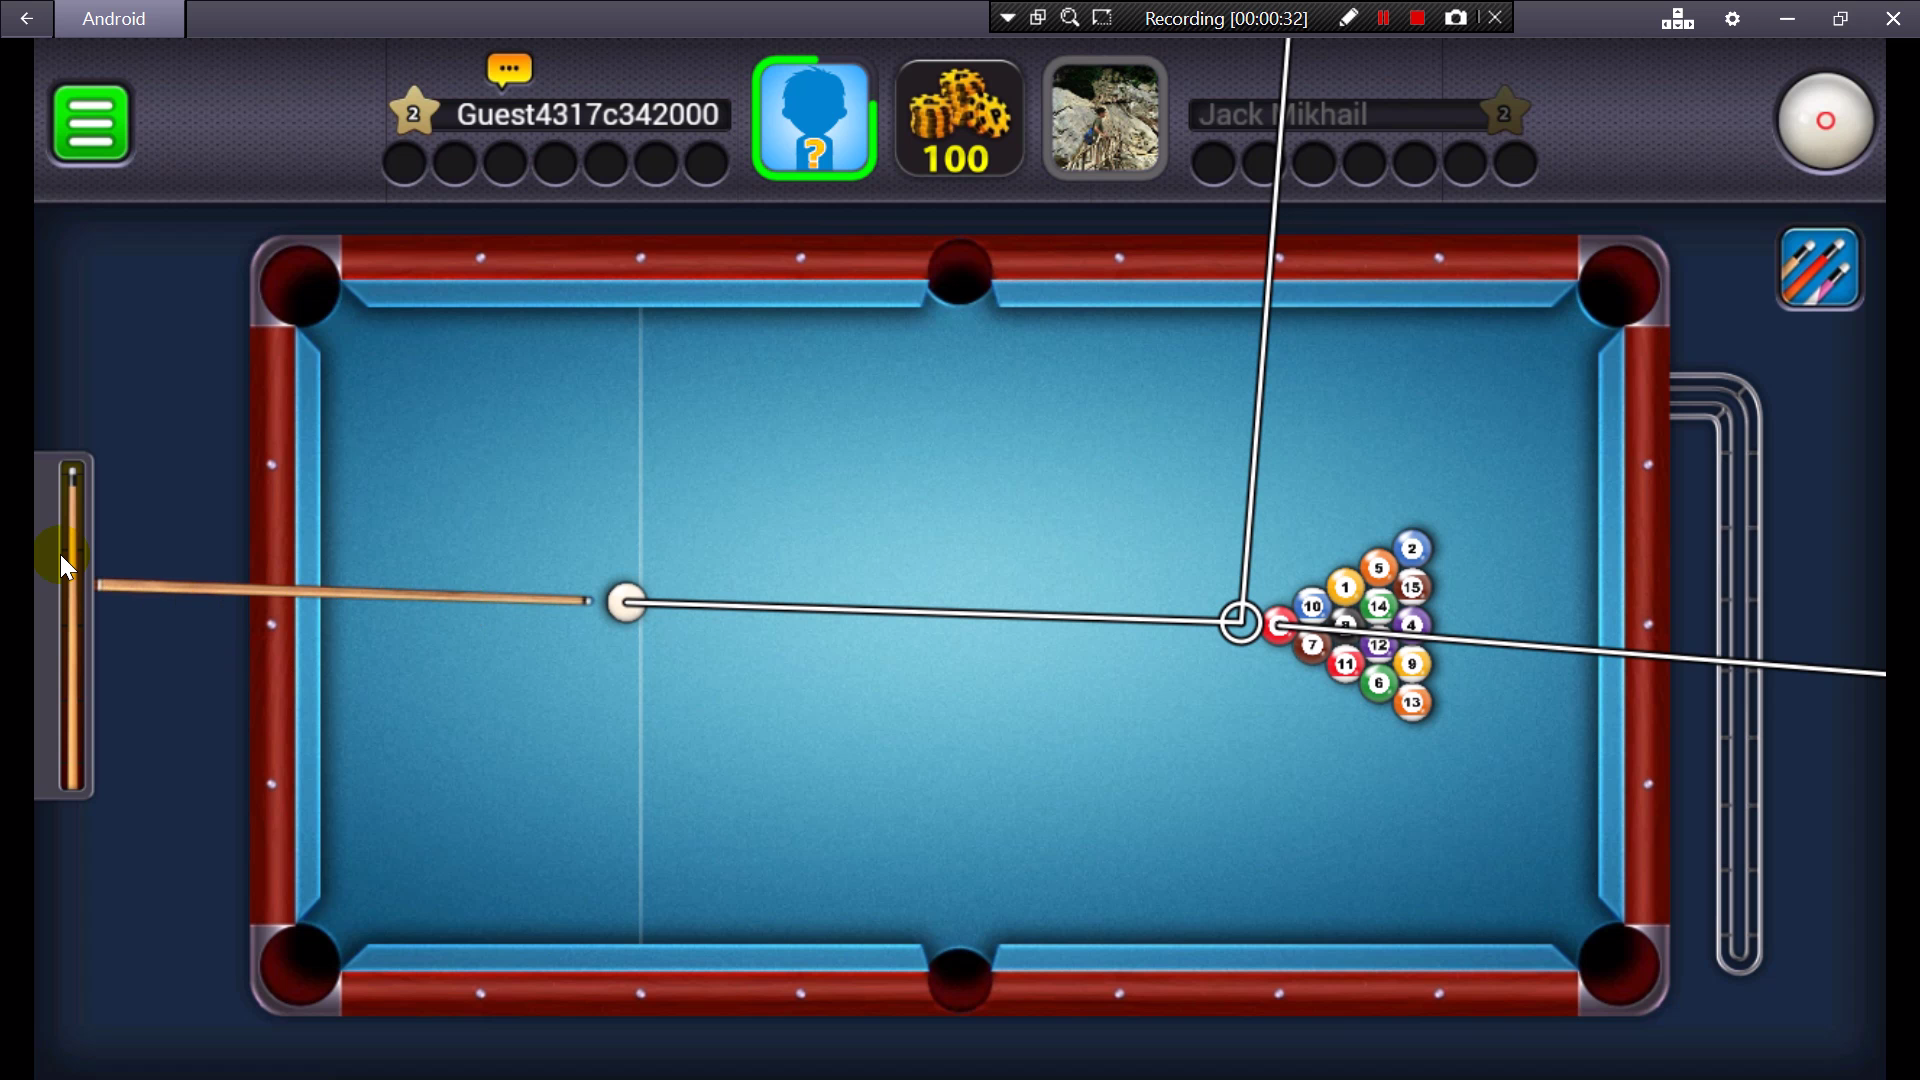 8 Ball Pool Mod Apk Download 3.9.1 Latest Version For Android